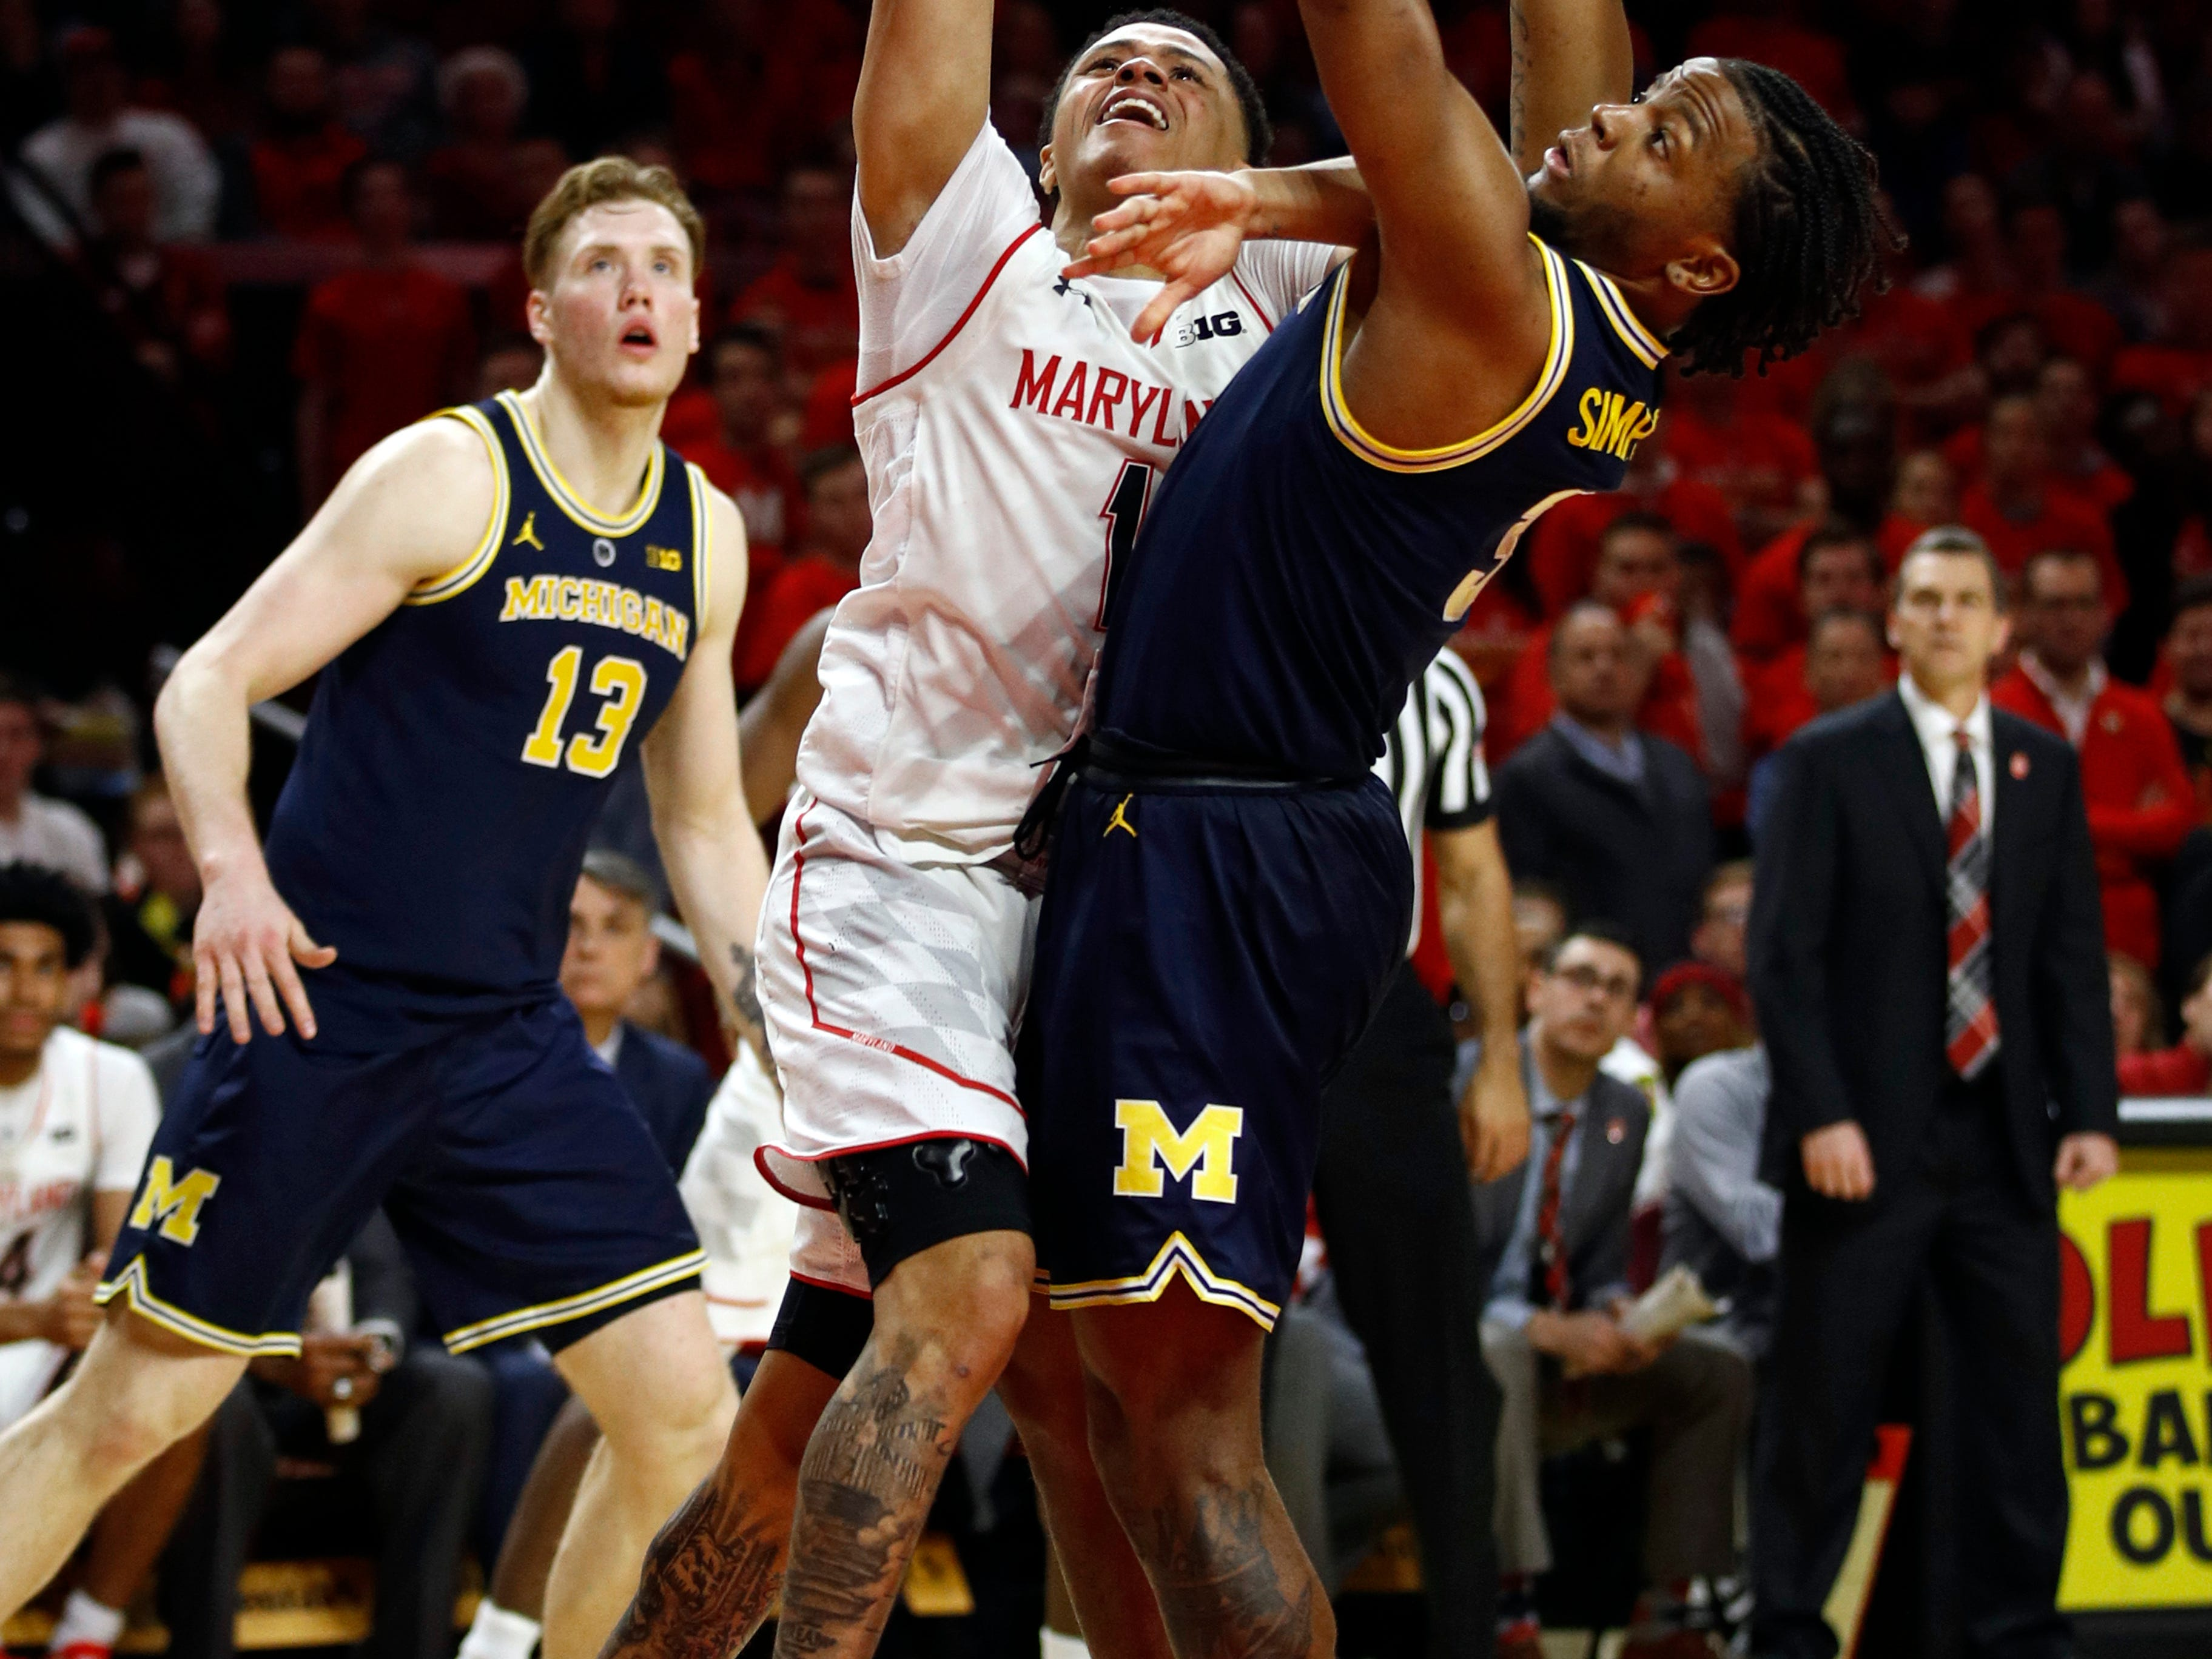 Maryland guard Anthony Cowan Jr., center, shoots between Michigan guard Zavier Simpson, right, and forward Ignas Brazdeikis, of Canada, in the second half.